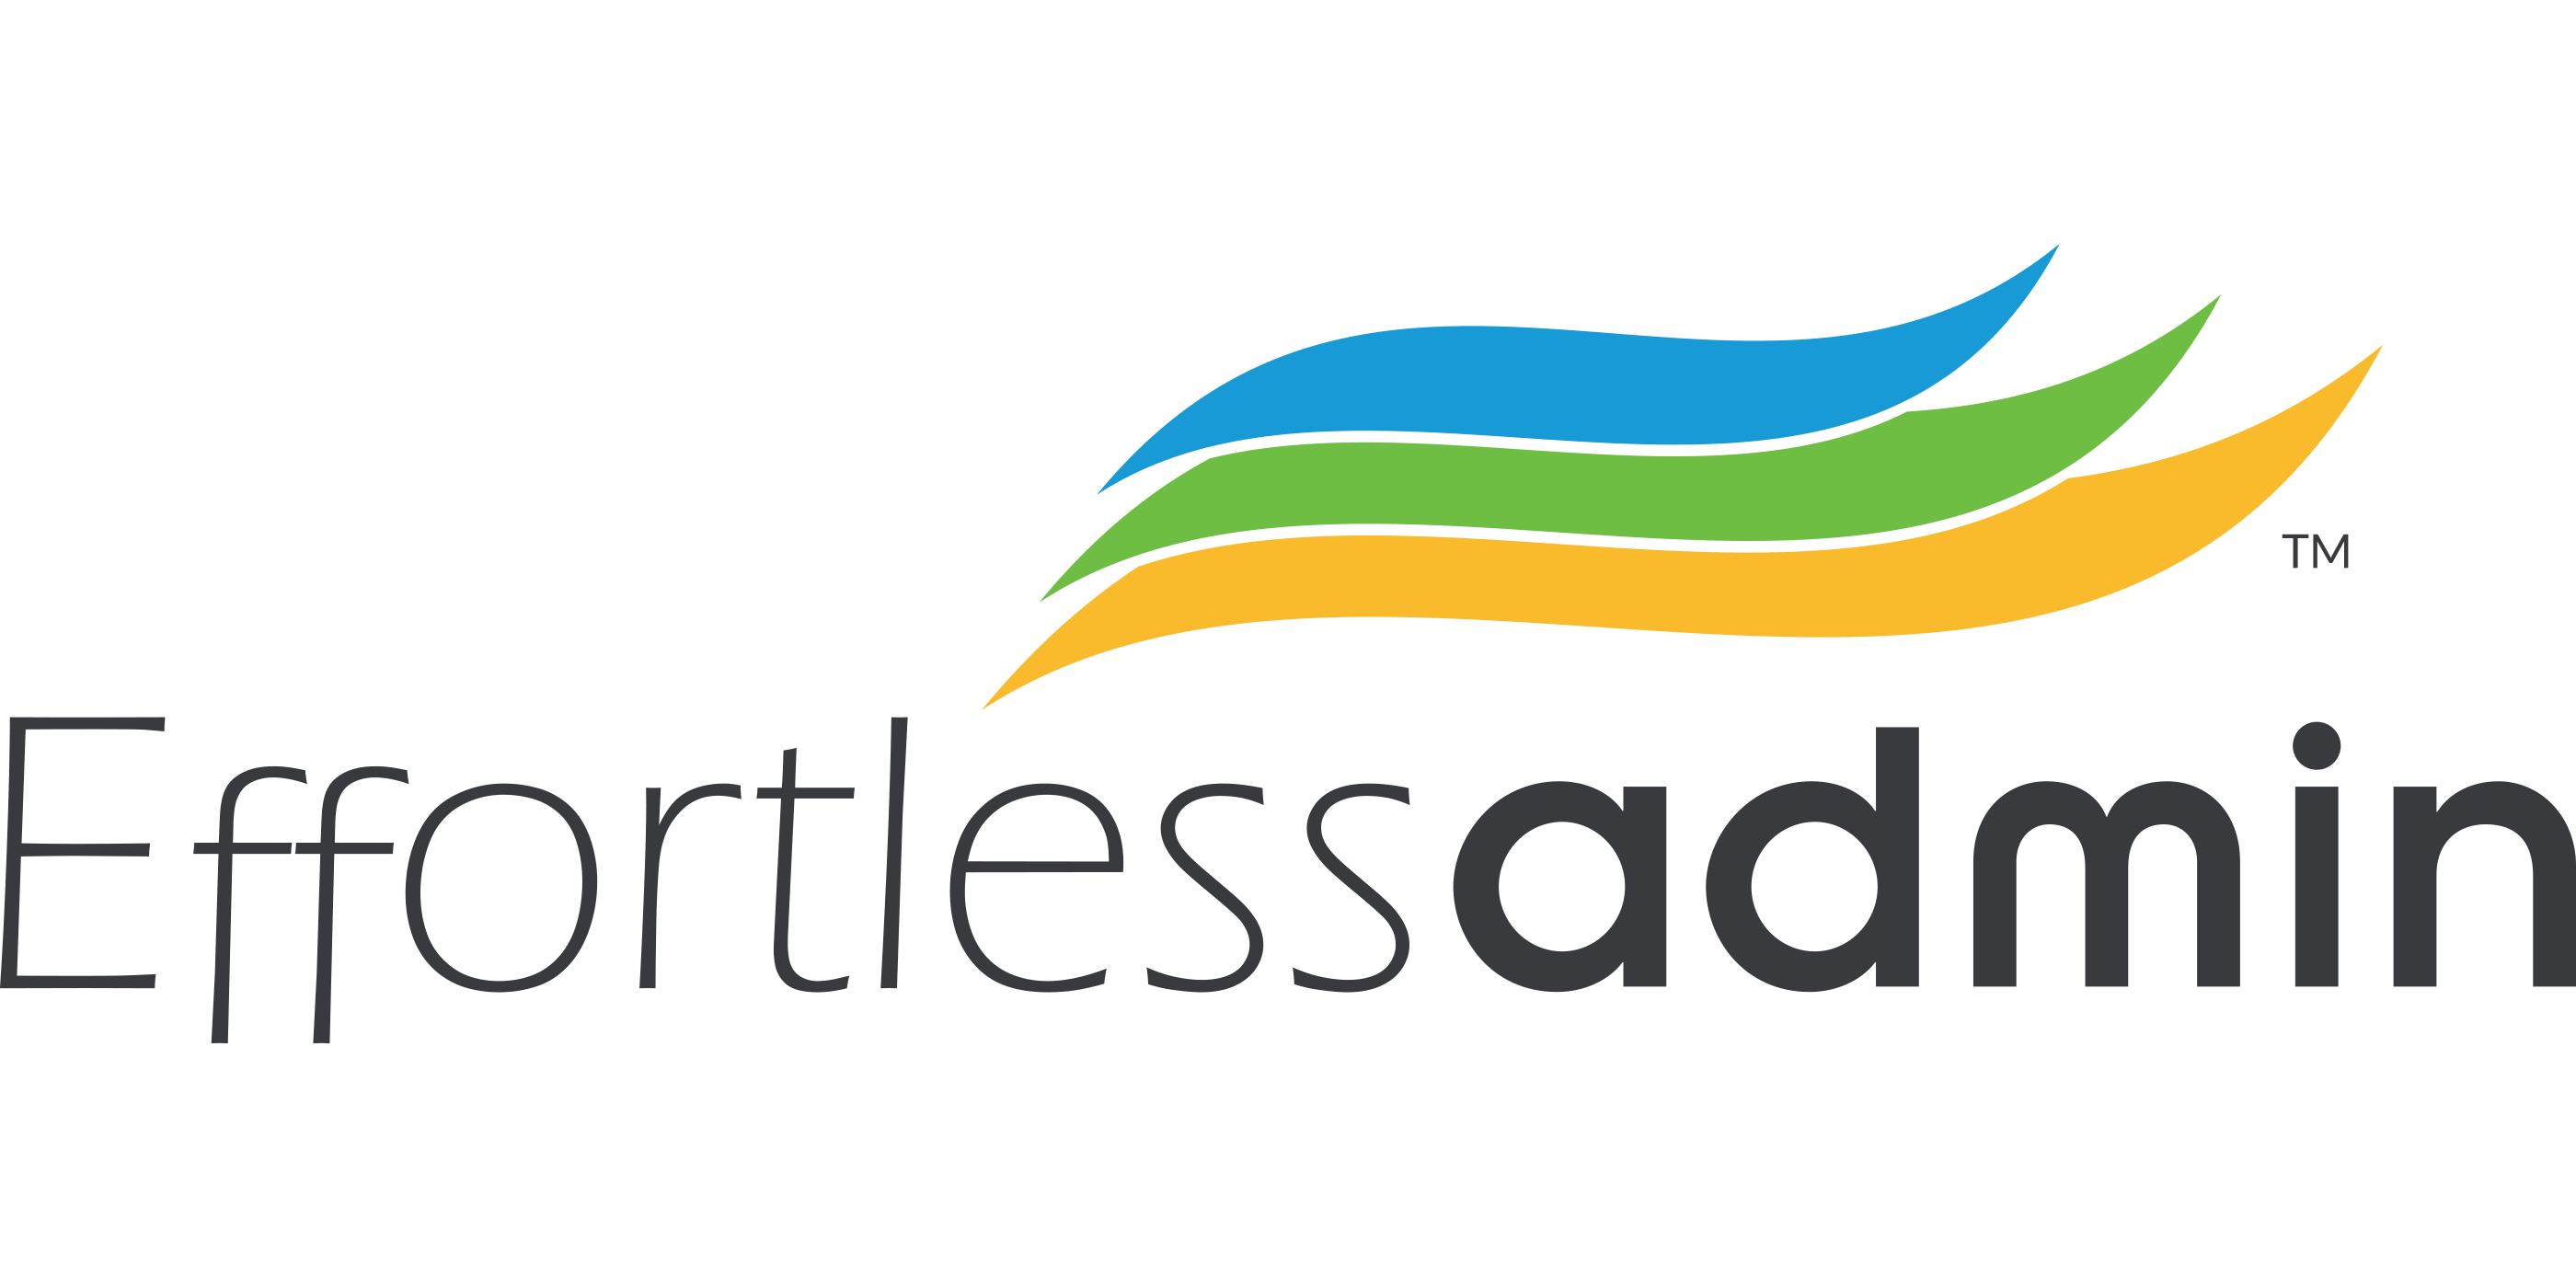 Effortless Admin Logo